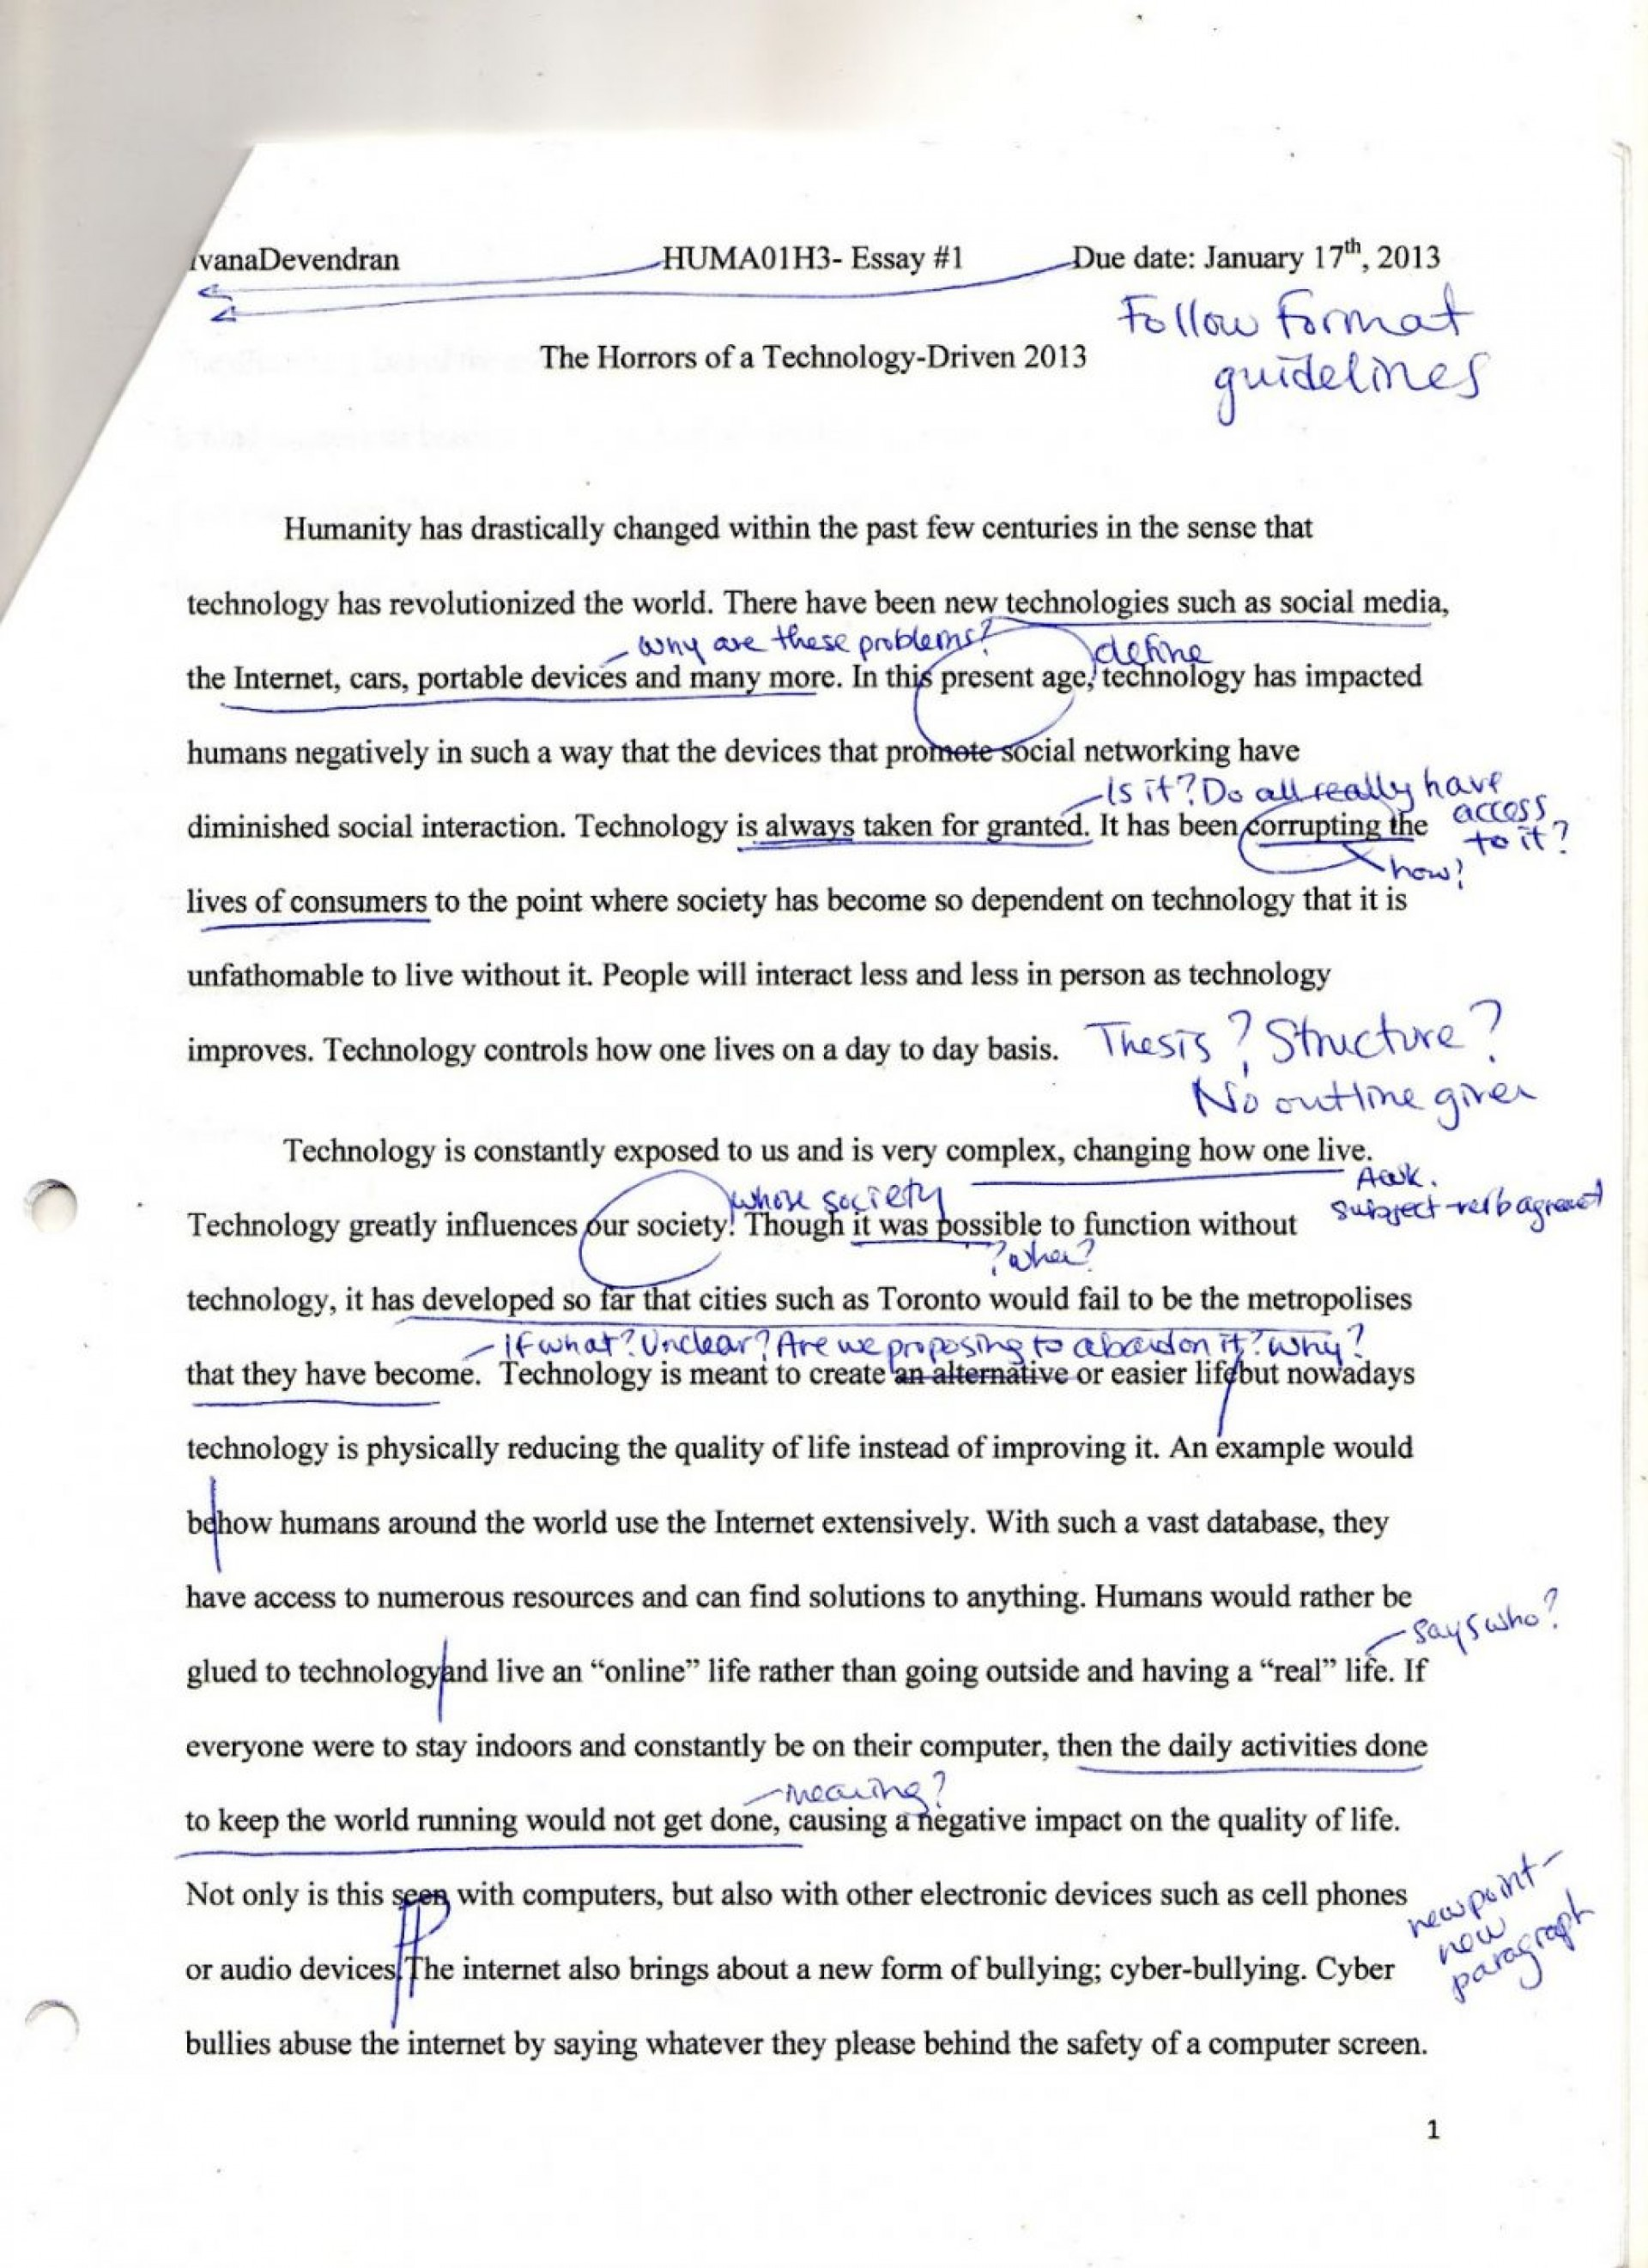 Research and evidence based practice essay